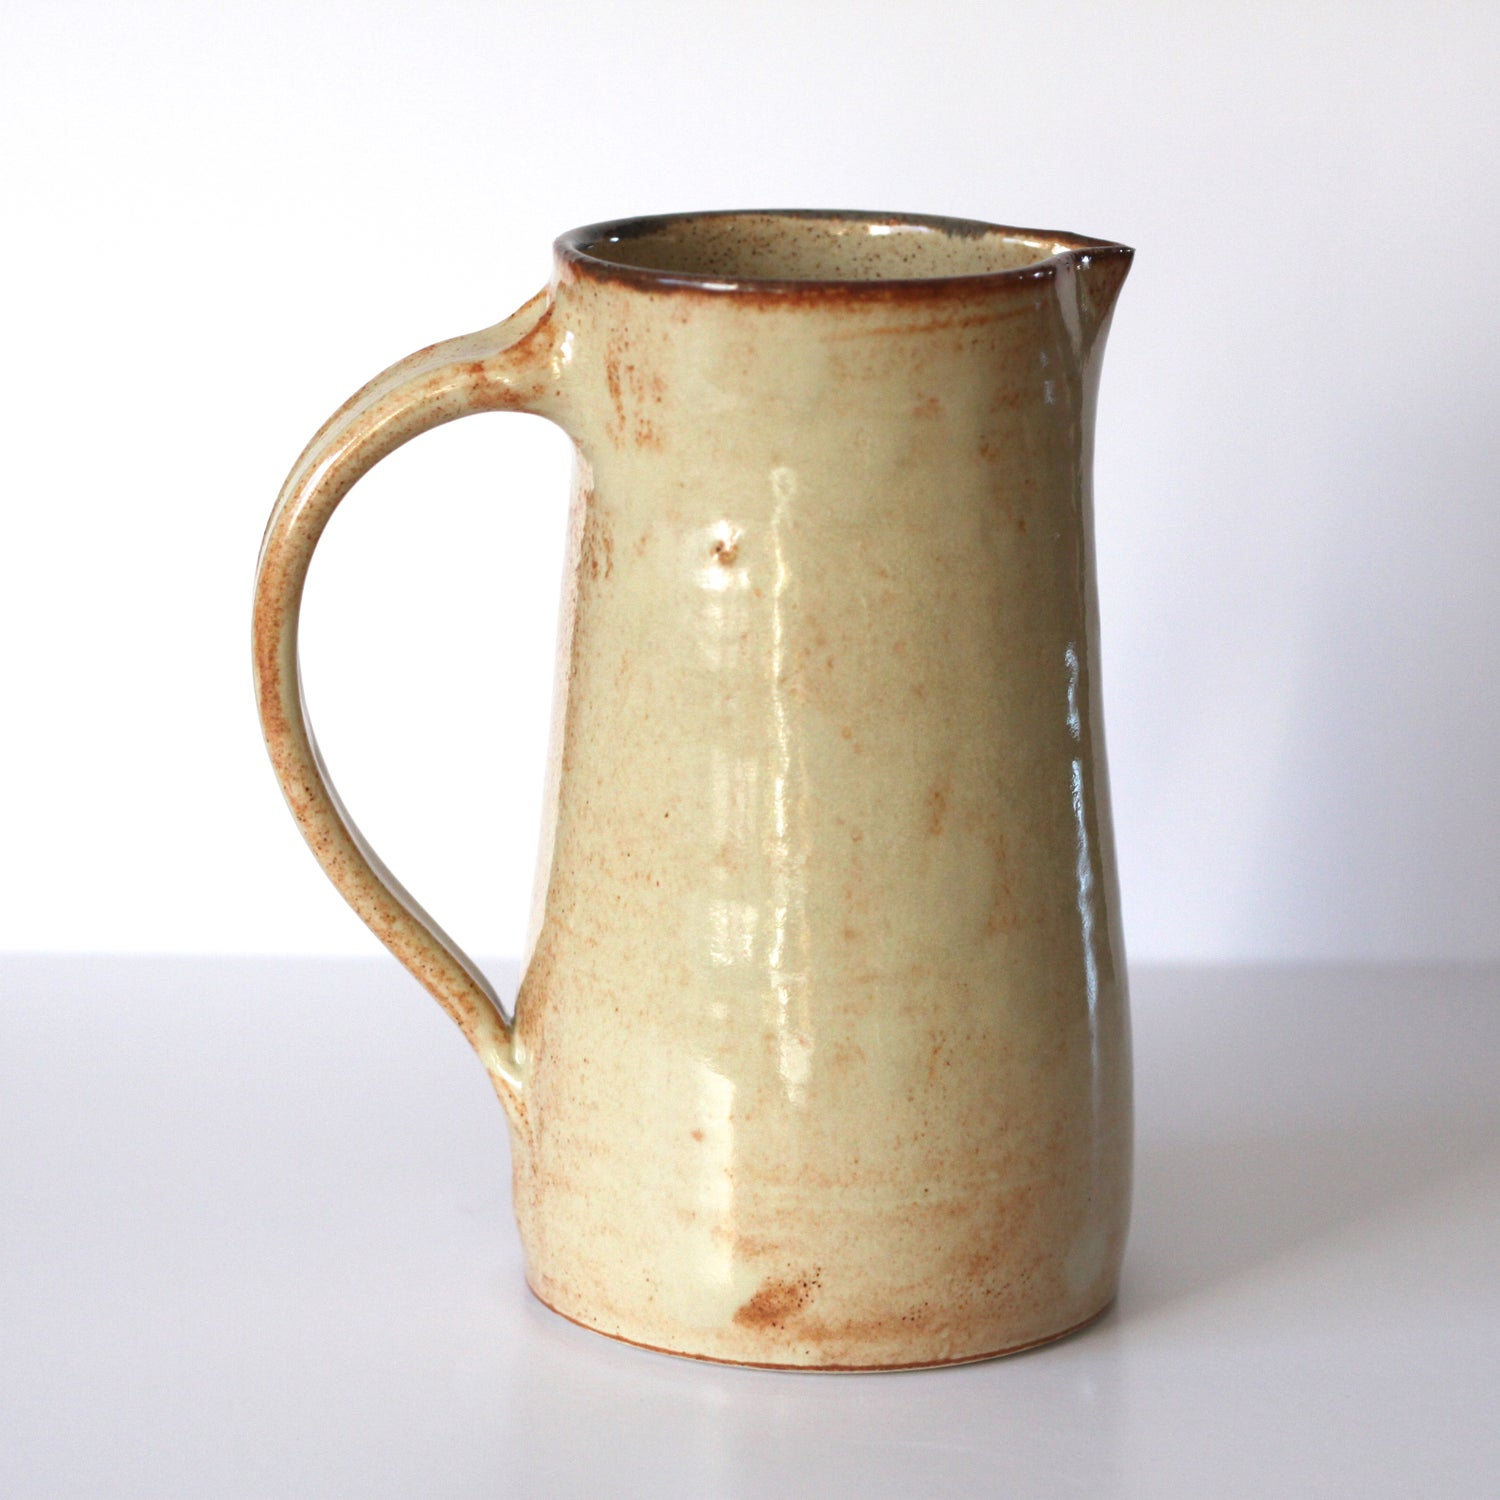 Image of Ceramic Pitcher / Pottery Pitcher / Doubles as a Vase / Shino Vase / 7 inch Pitcher